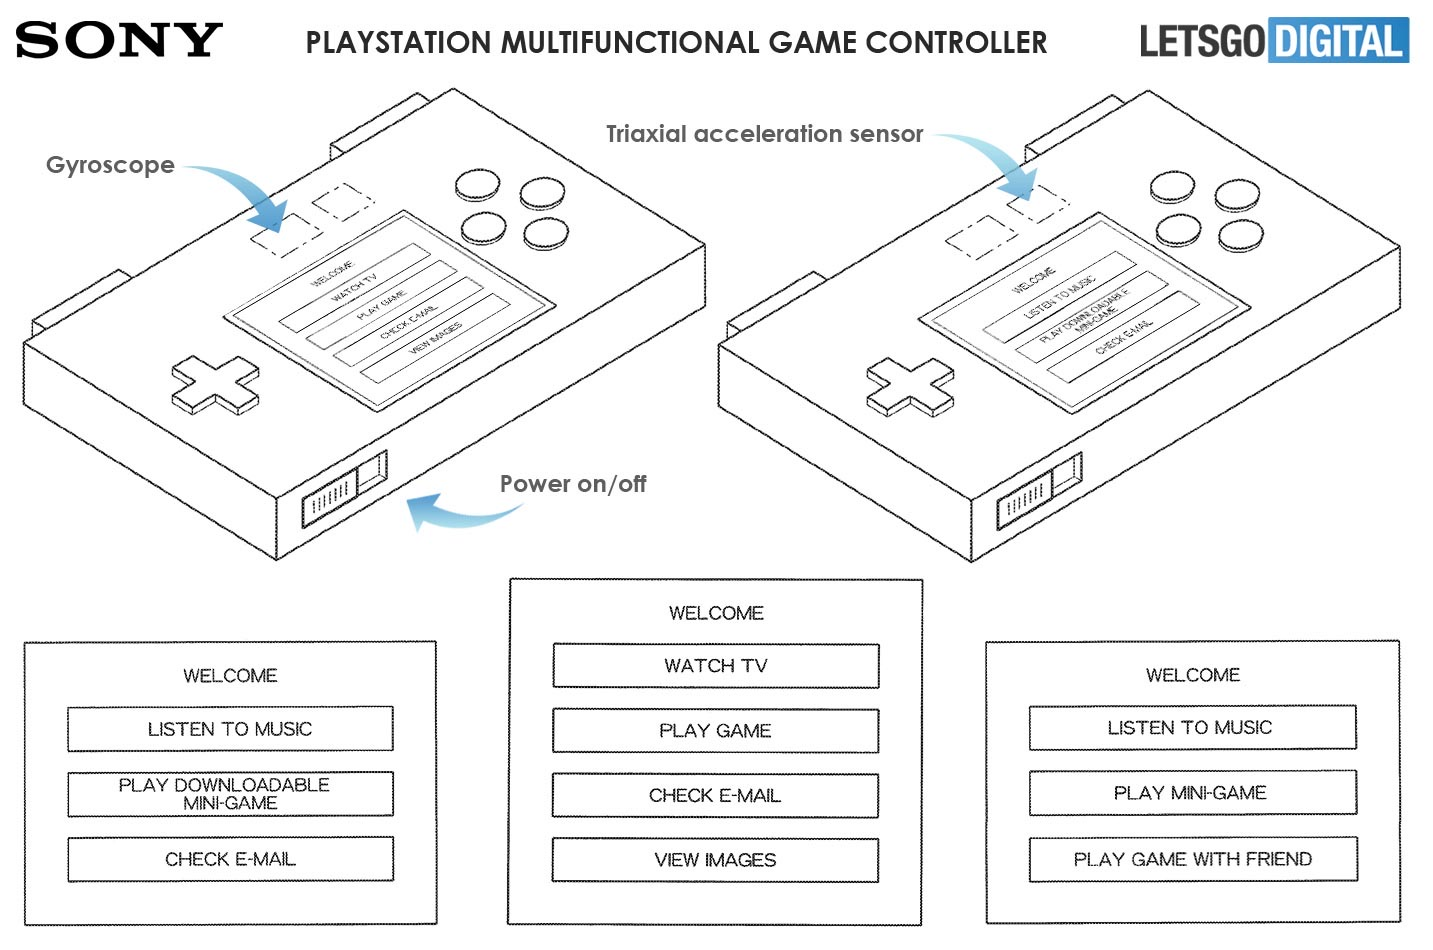 Sony patent shows PlayStation's stab at a Wii U GamePad 3